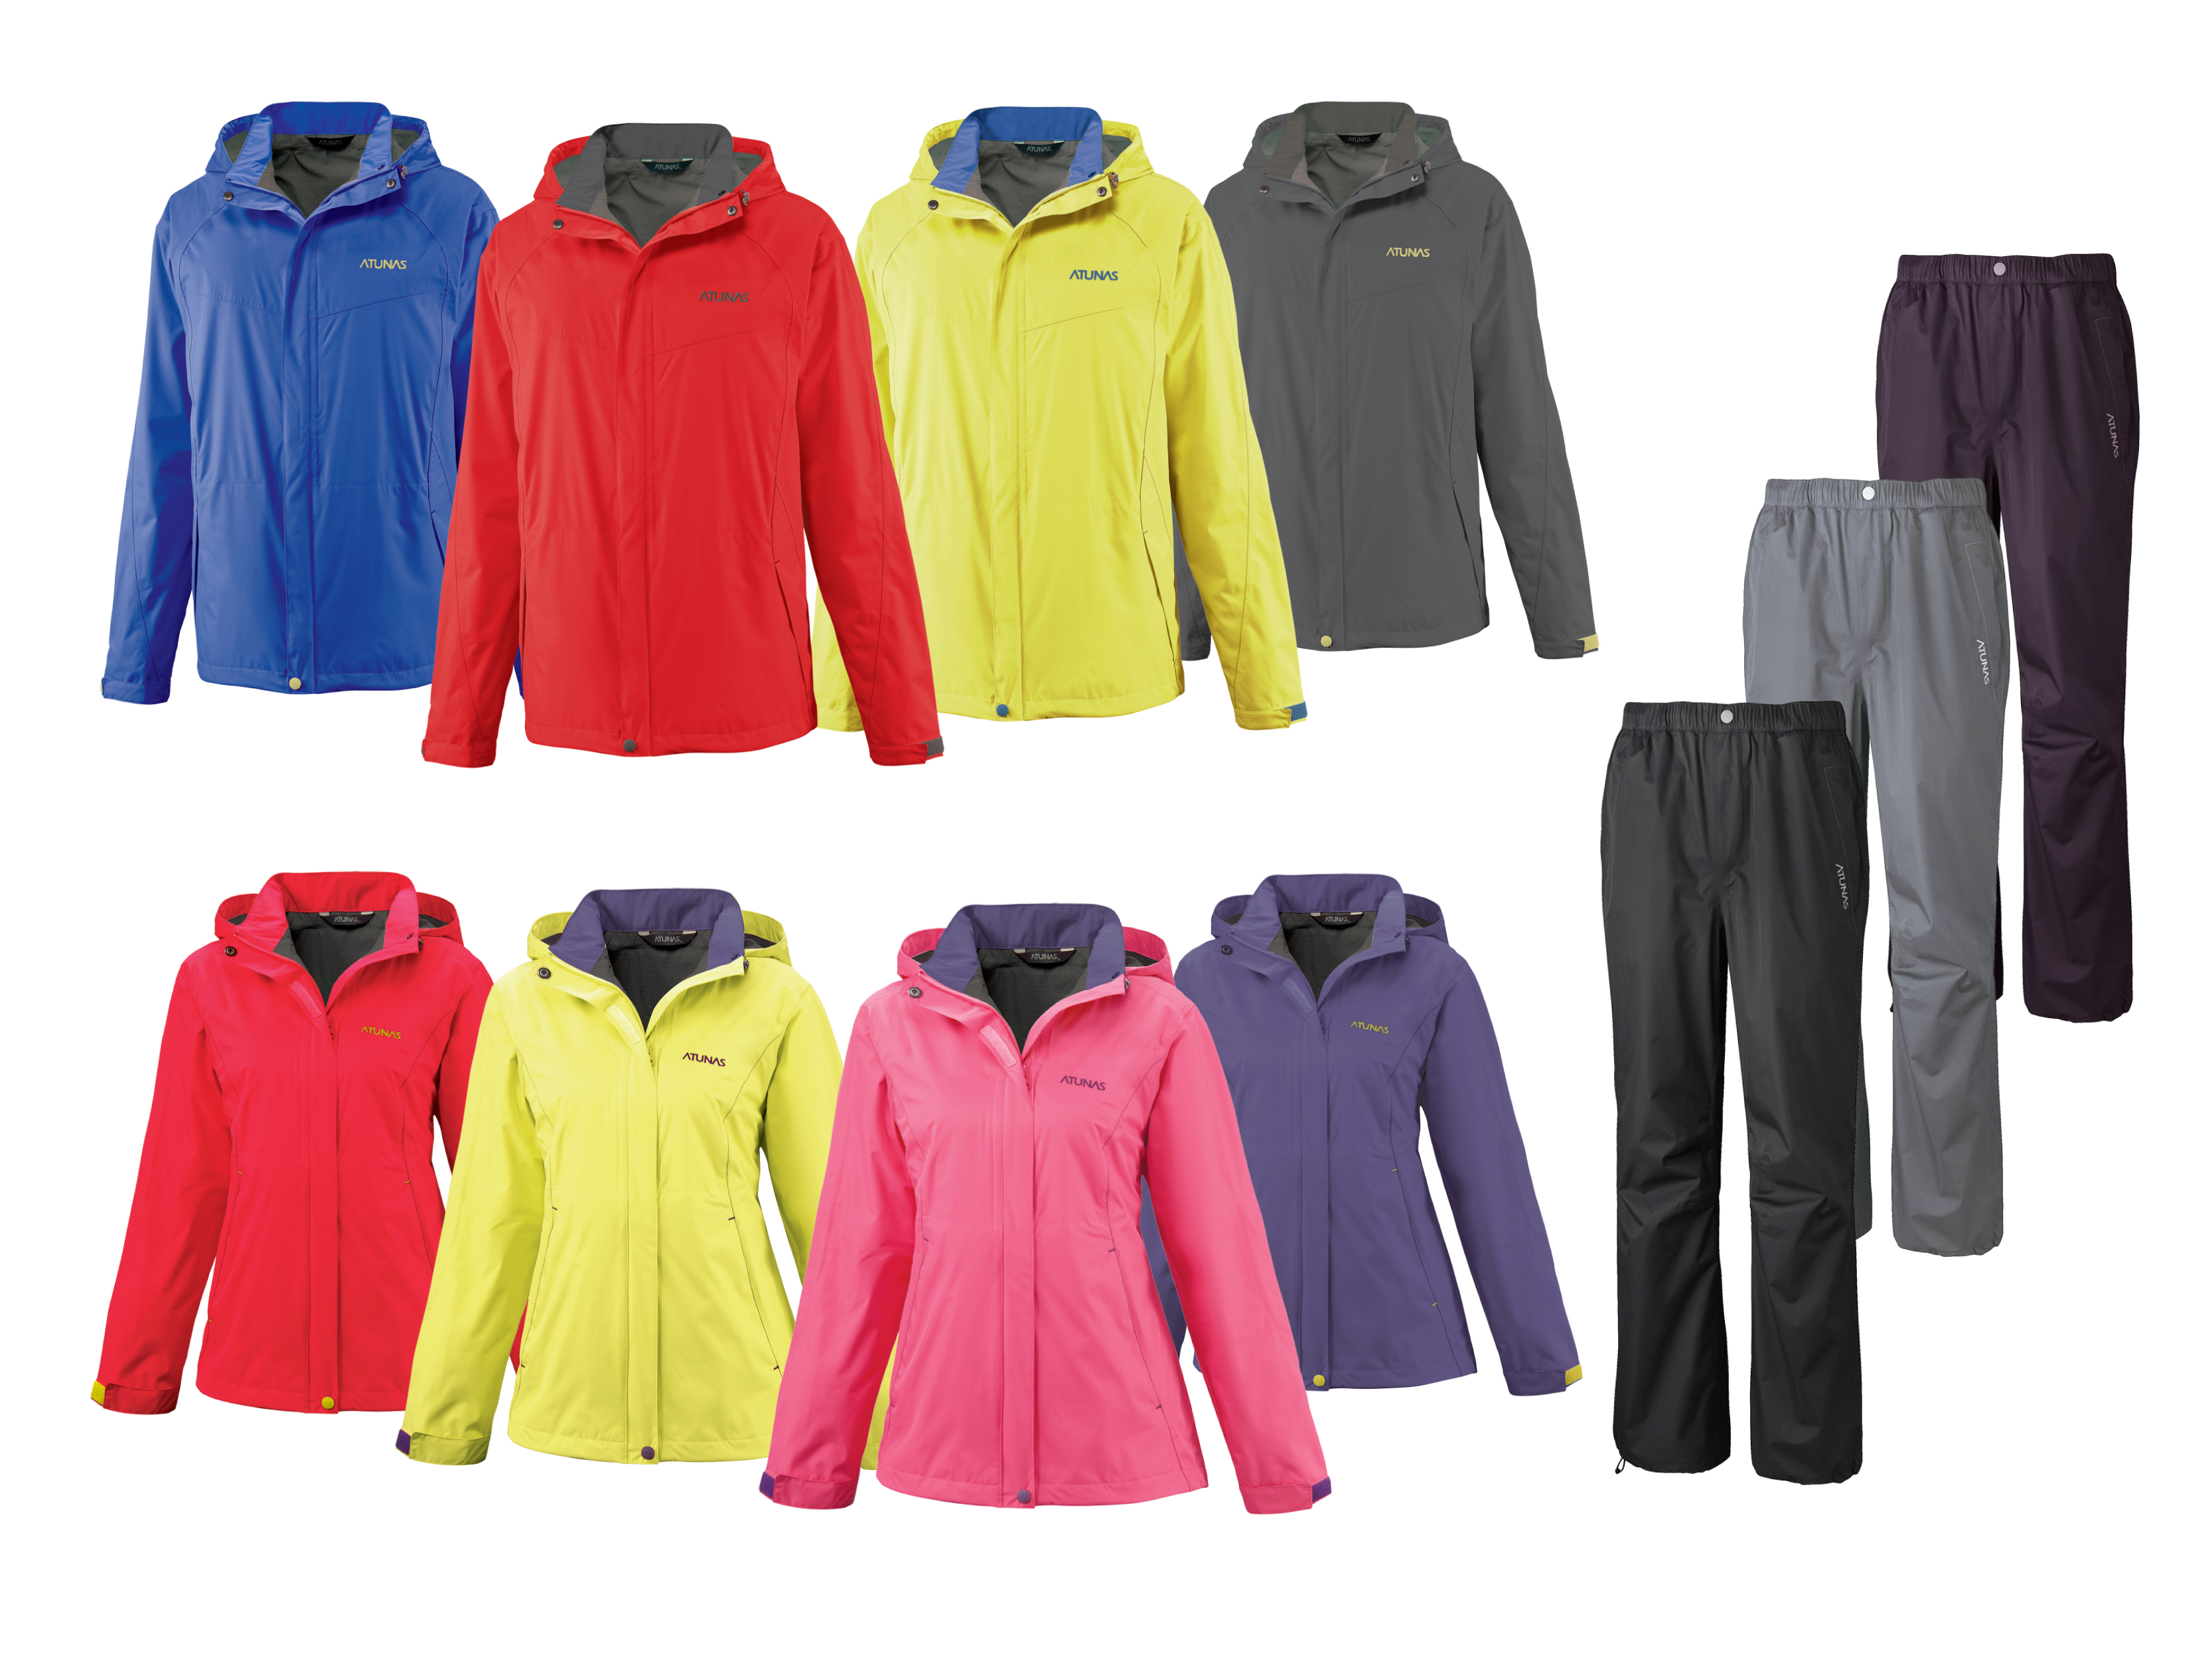 Green Forest Waterproof Moisture Permeable Functional Collection / SUN OWN INDUSTRIAL CO., LTD.